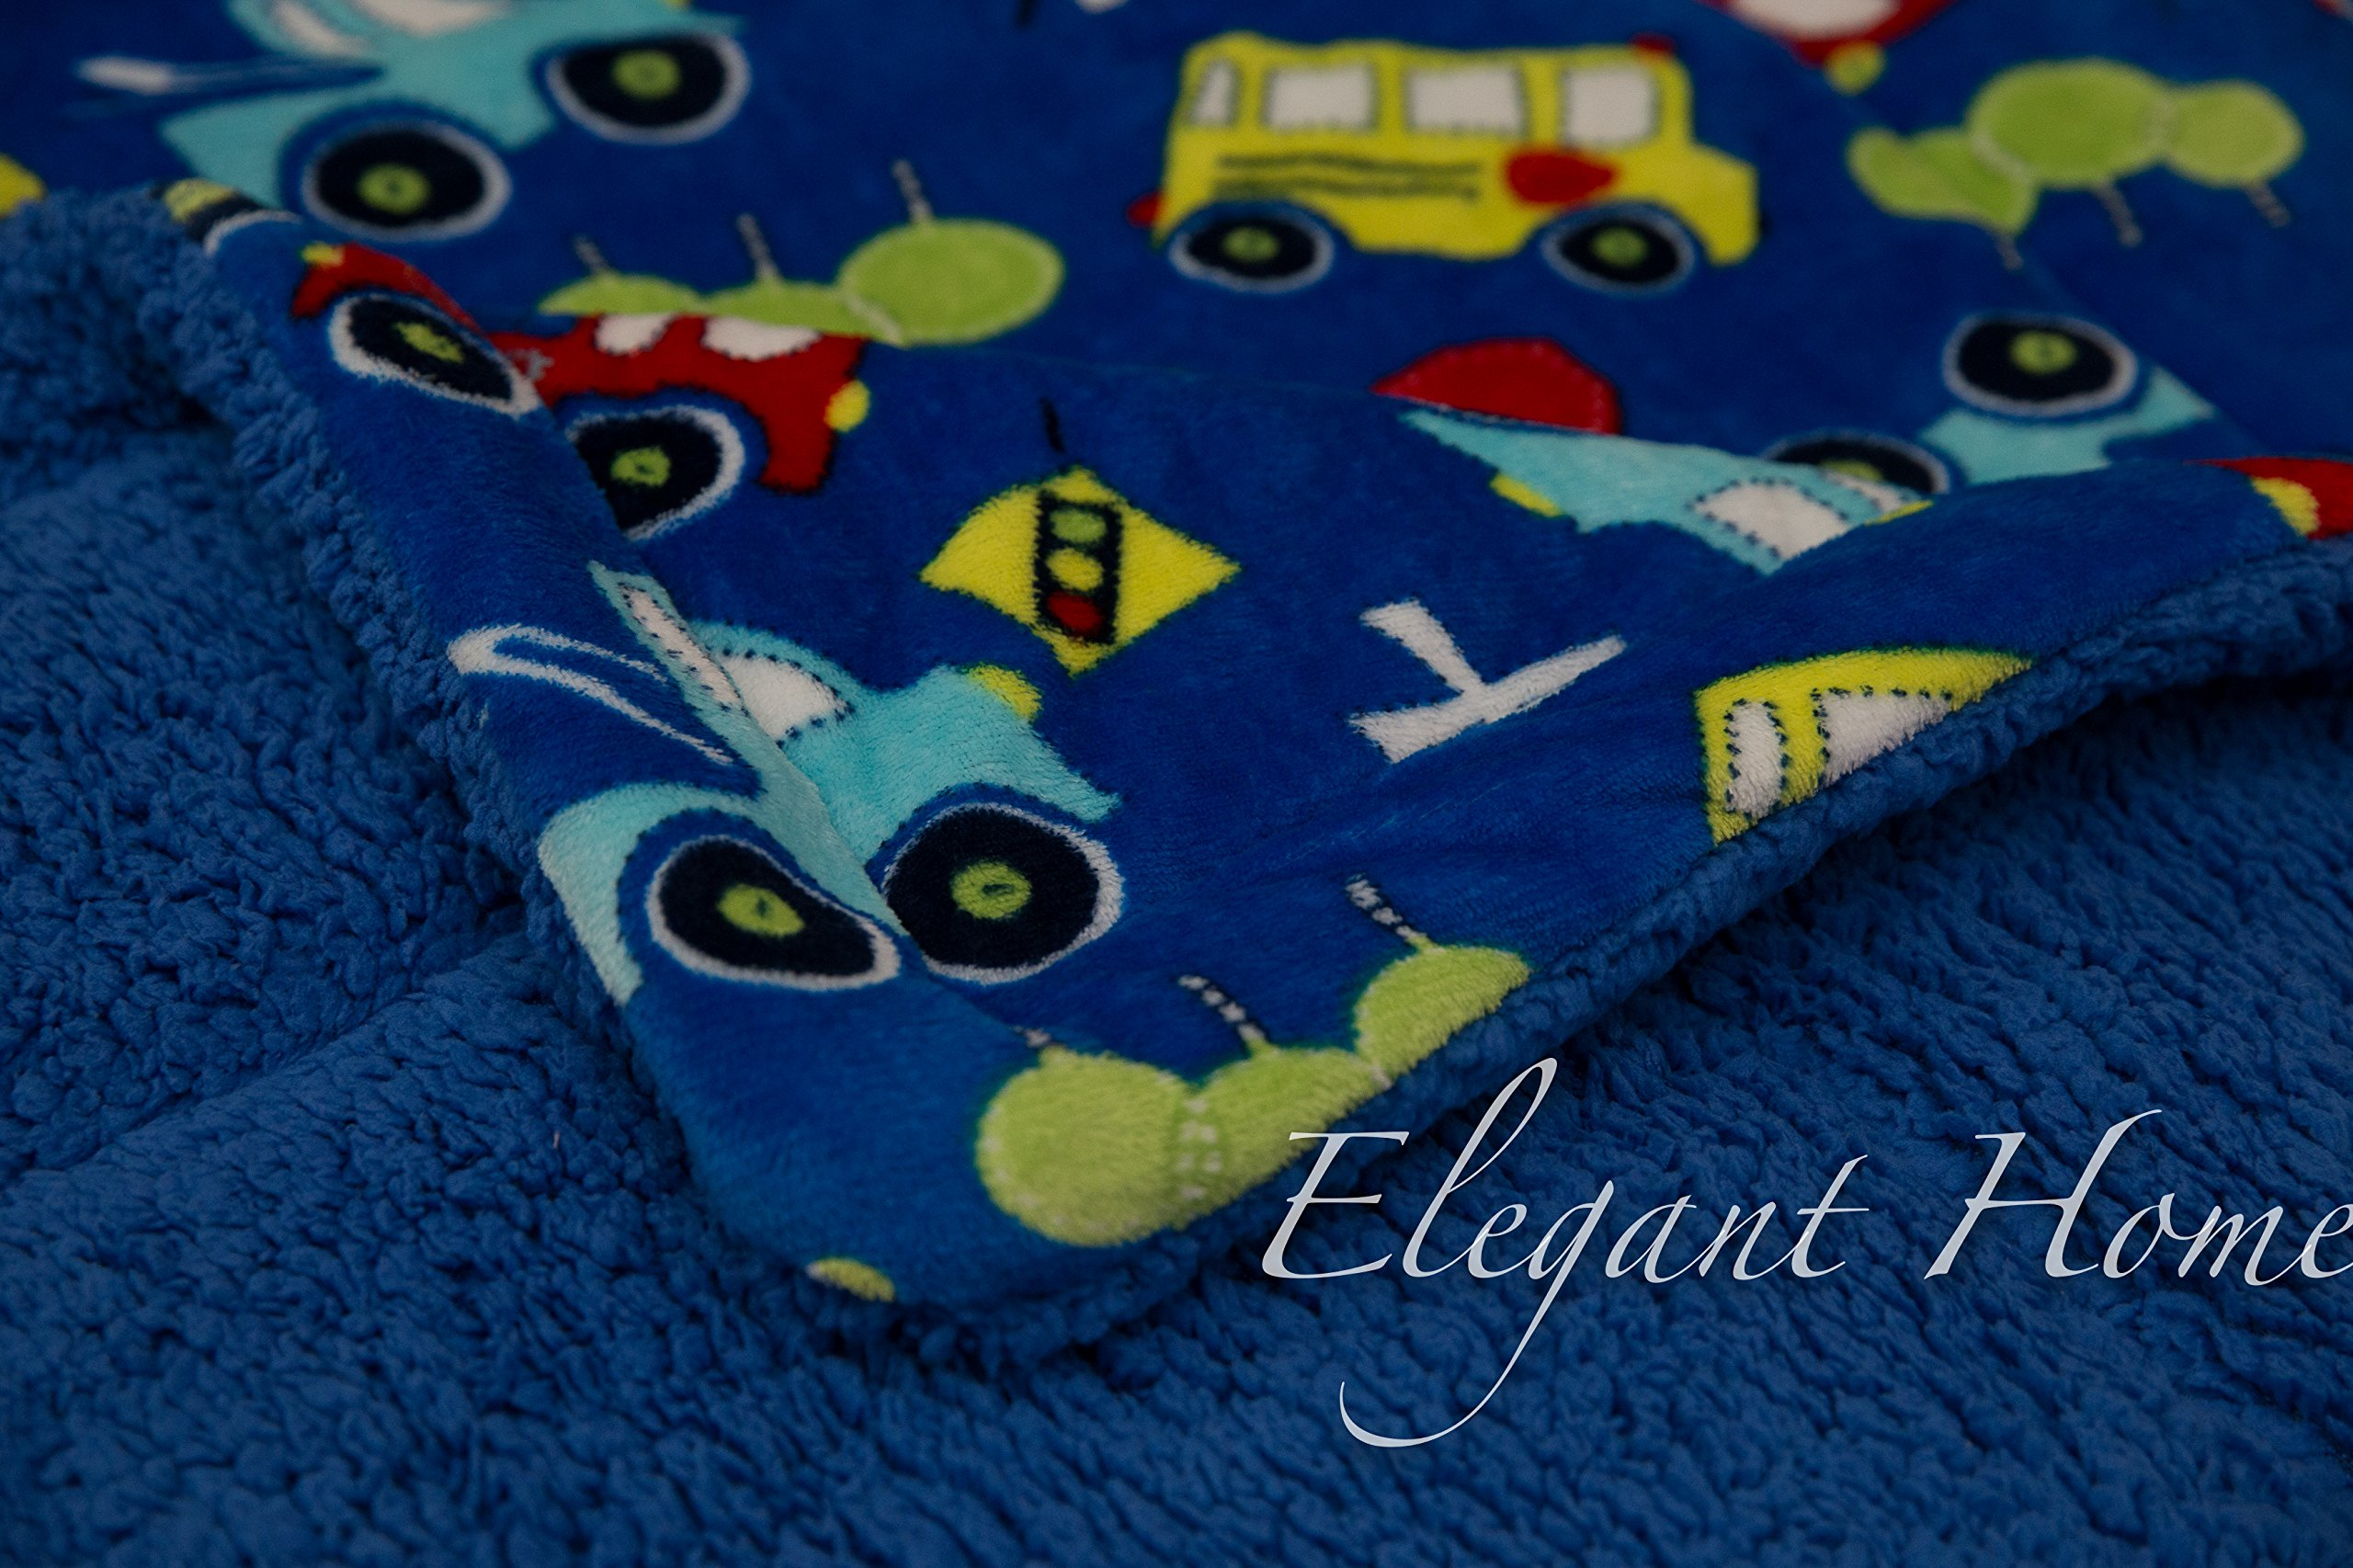 Elegant Home Kids Soft & Warm Sherpa Baby Toddler Boy Sherpa Blanket Multicolor Cars Trucks Buses Printed Borrego Stroller or Toddler Bed Blanket Plush Throw 40X50 # Cars by Elegant Homes